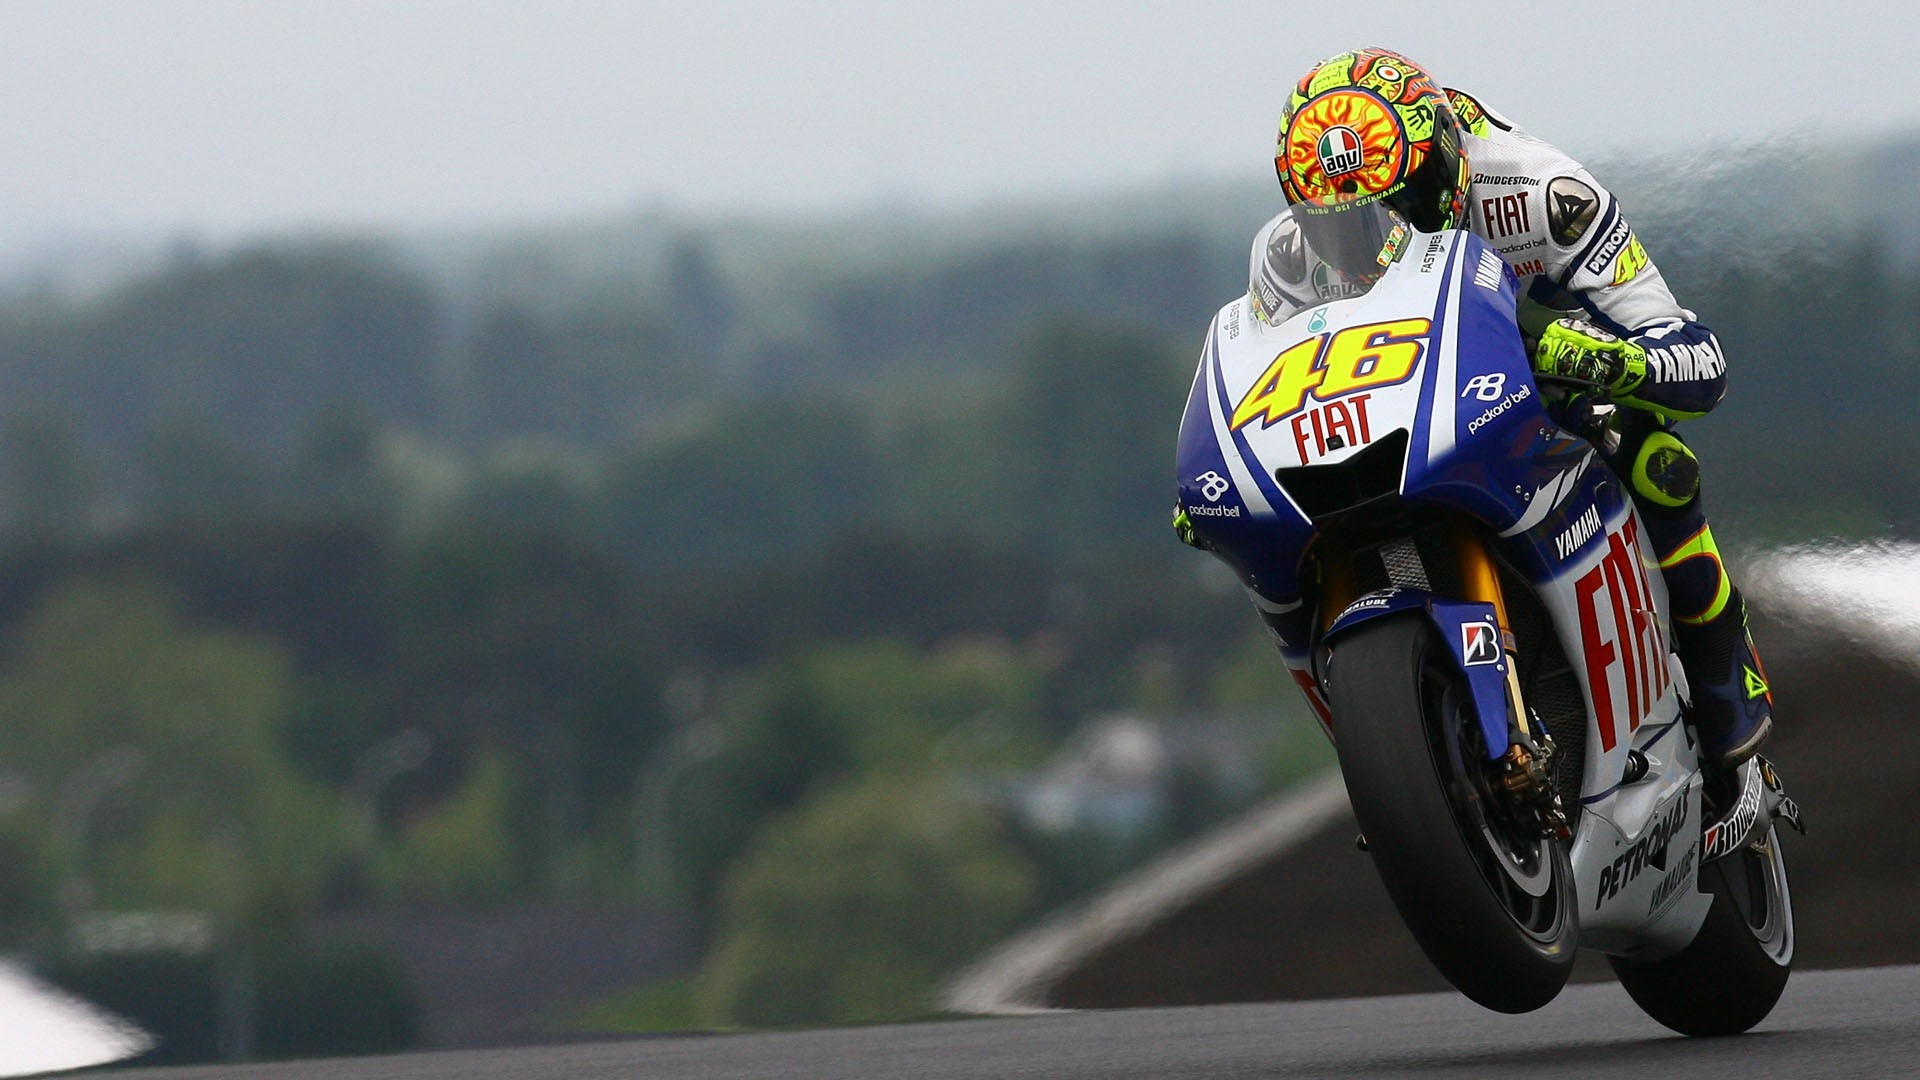 Valentino rossi wallpaper hd 65 images 1920x1080 valentino rossi 2013 wallpaper hd wallpaper 707183 voltagebd Choice Image